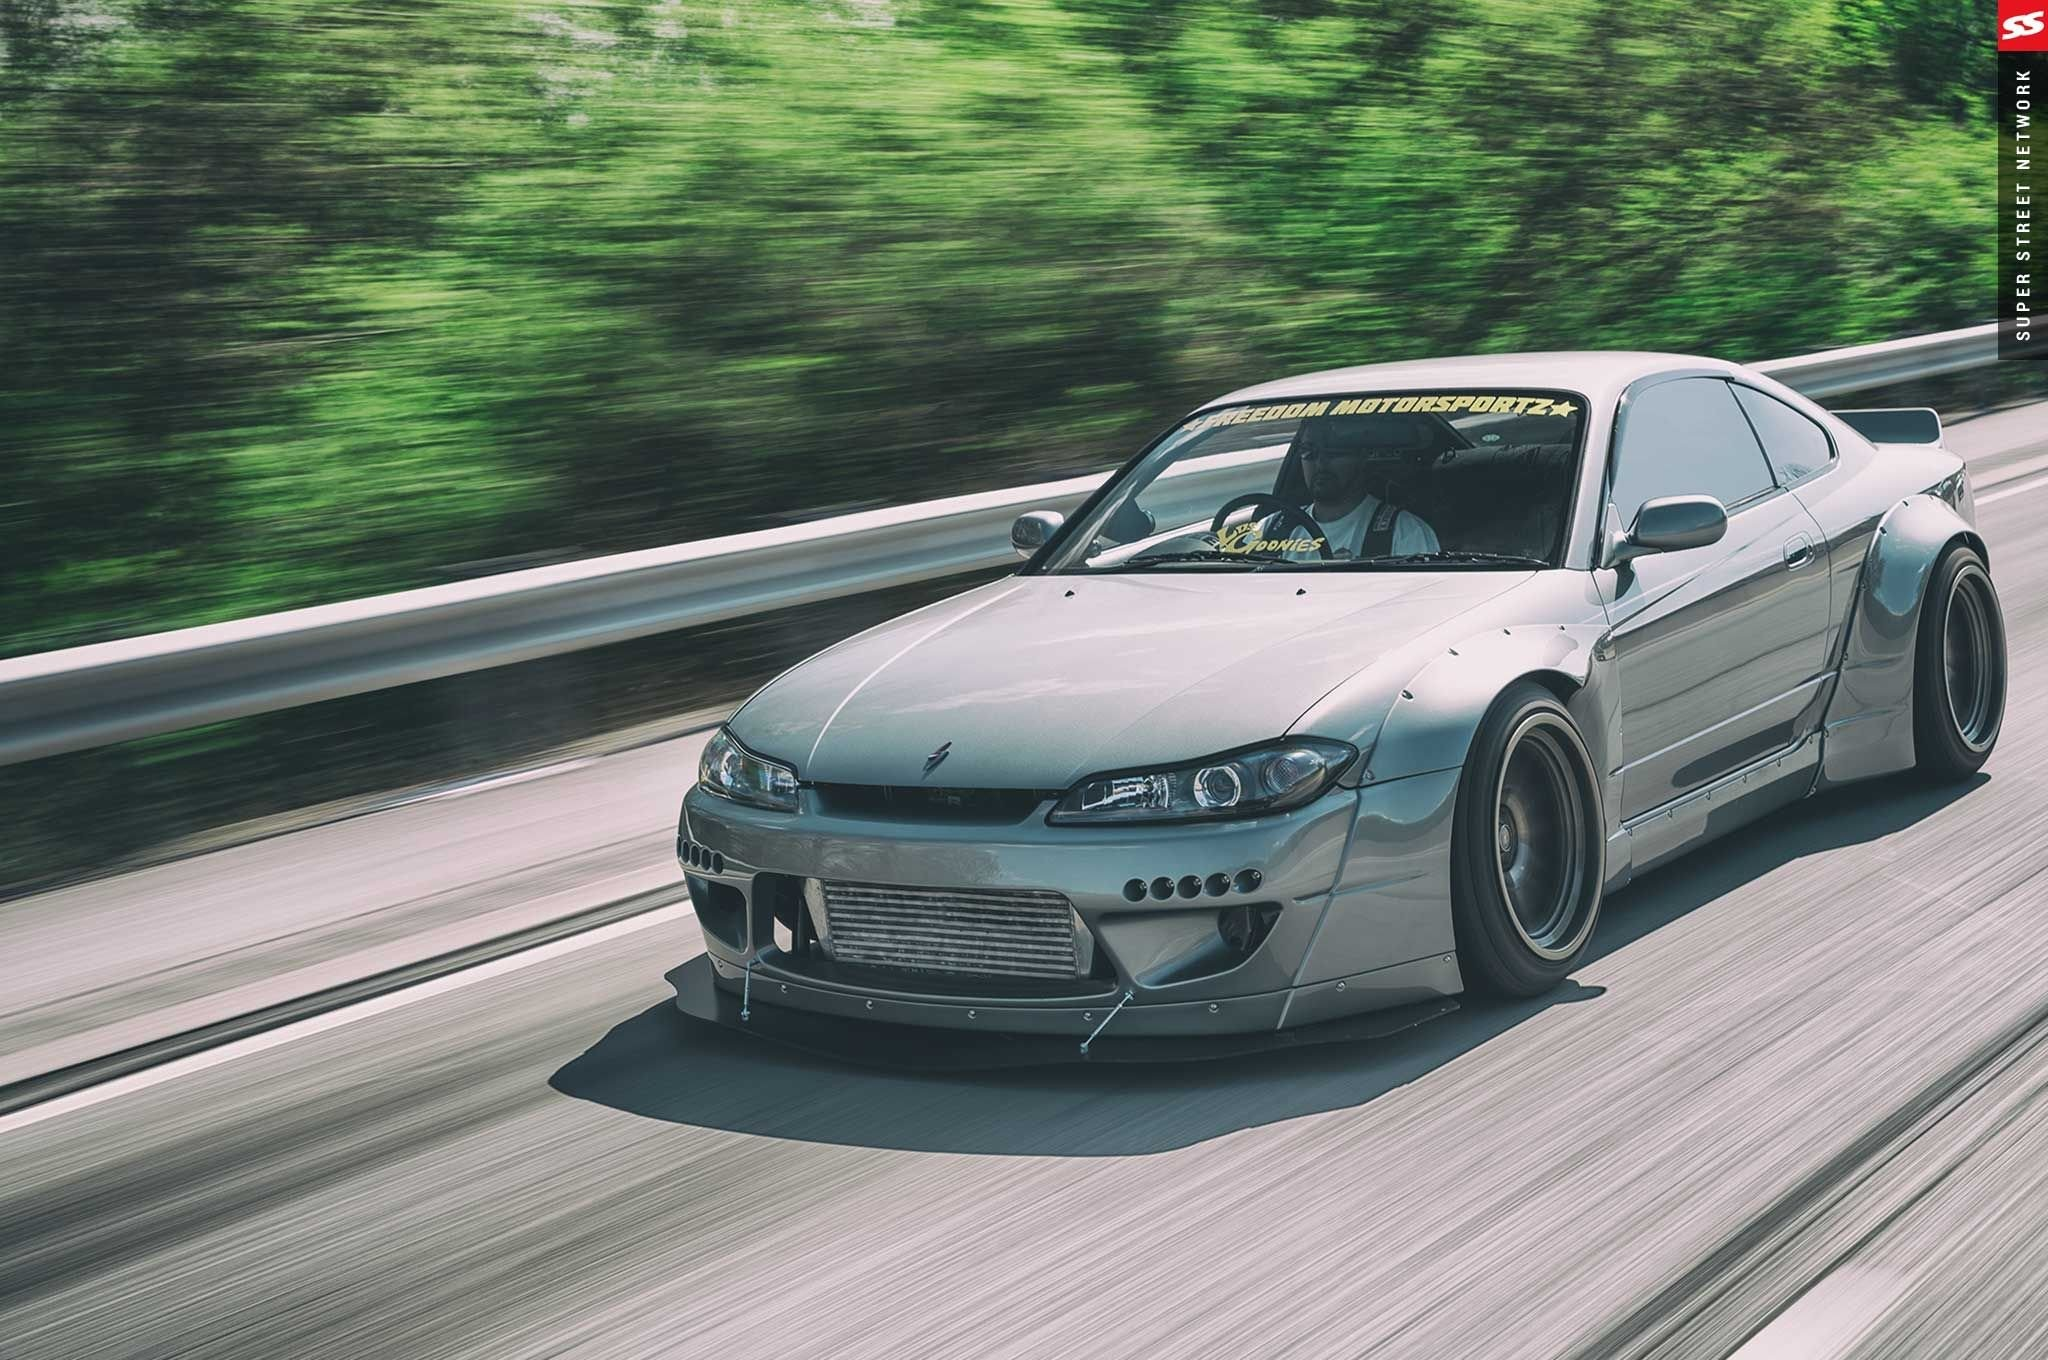 Res: 2048x1360, Rocket Bunny Nissan Silvia S15 cars coupe bodykit modified wallpaper |   | 886905 | WallpaperUP